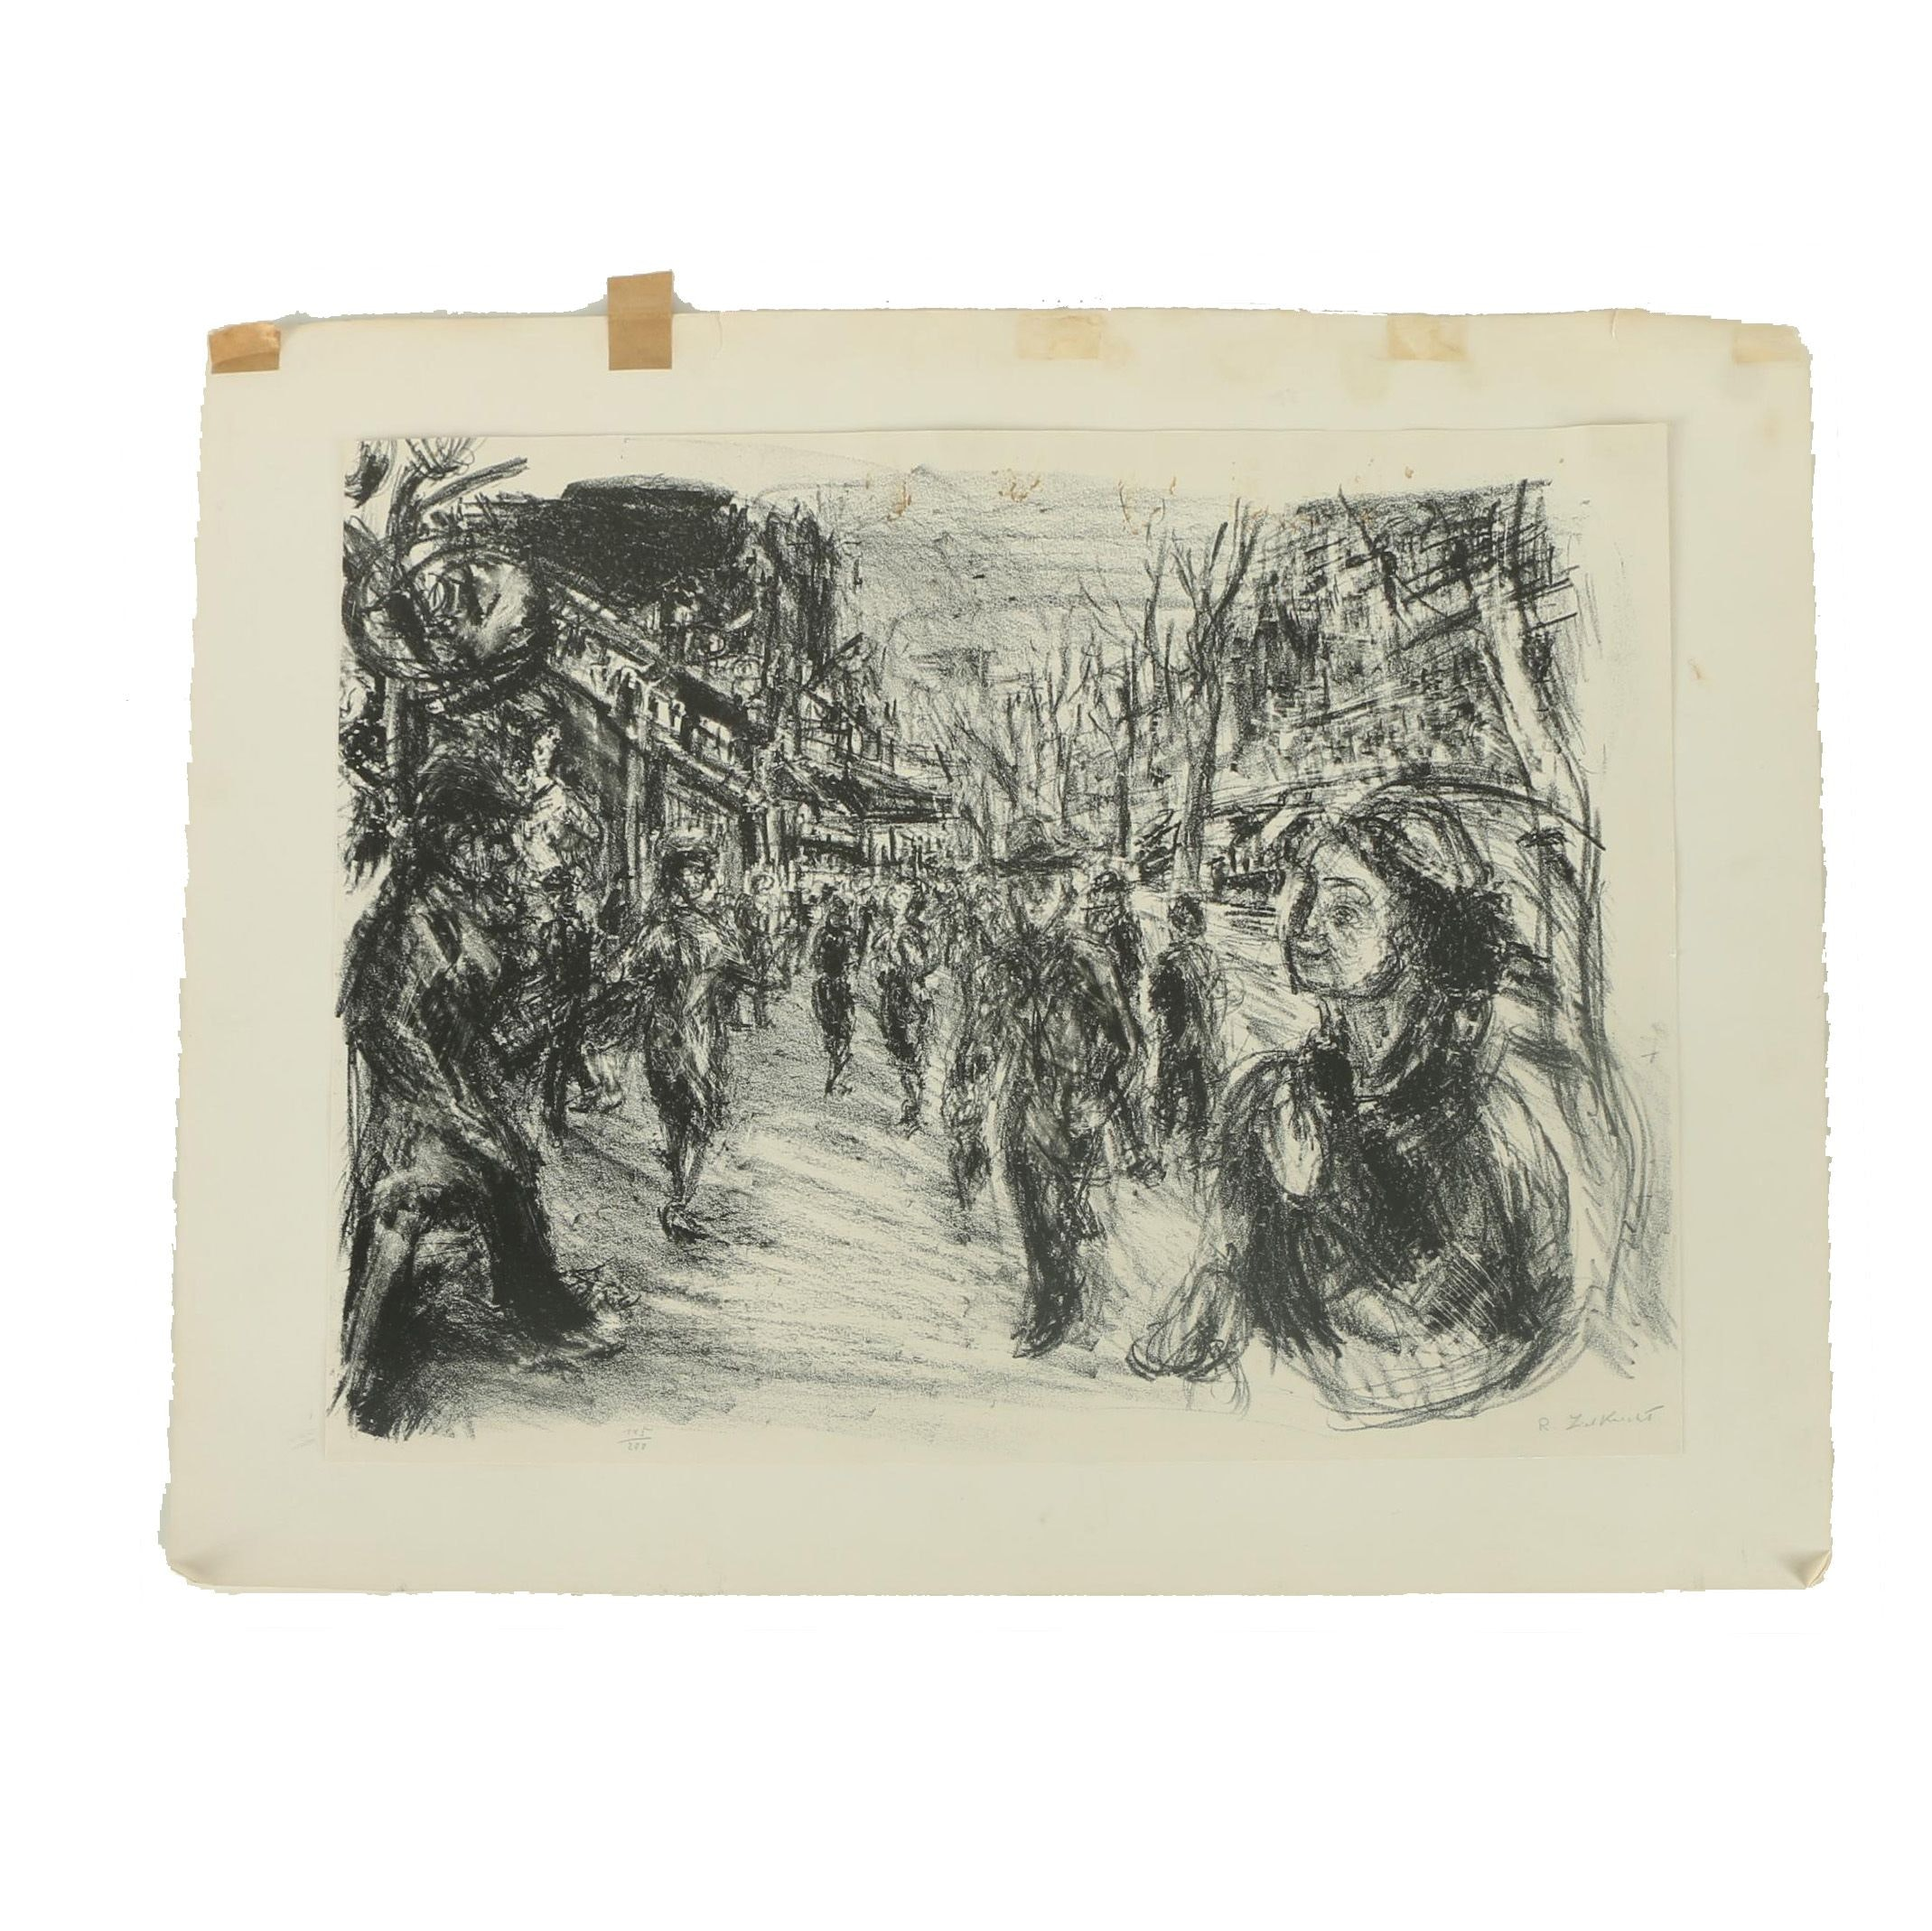 Limited Edition Lithograph on Paper of Town Scene